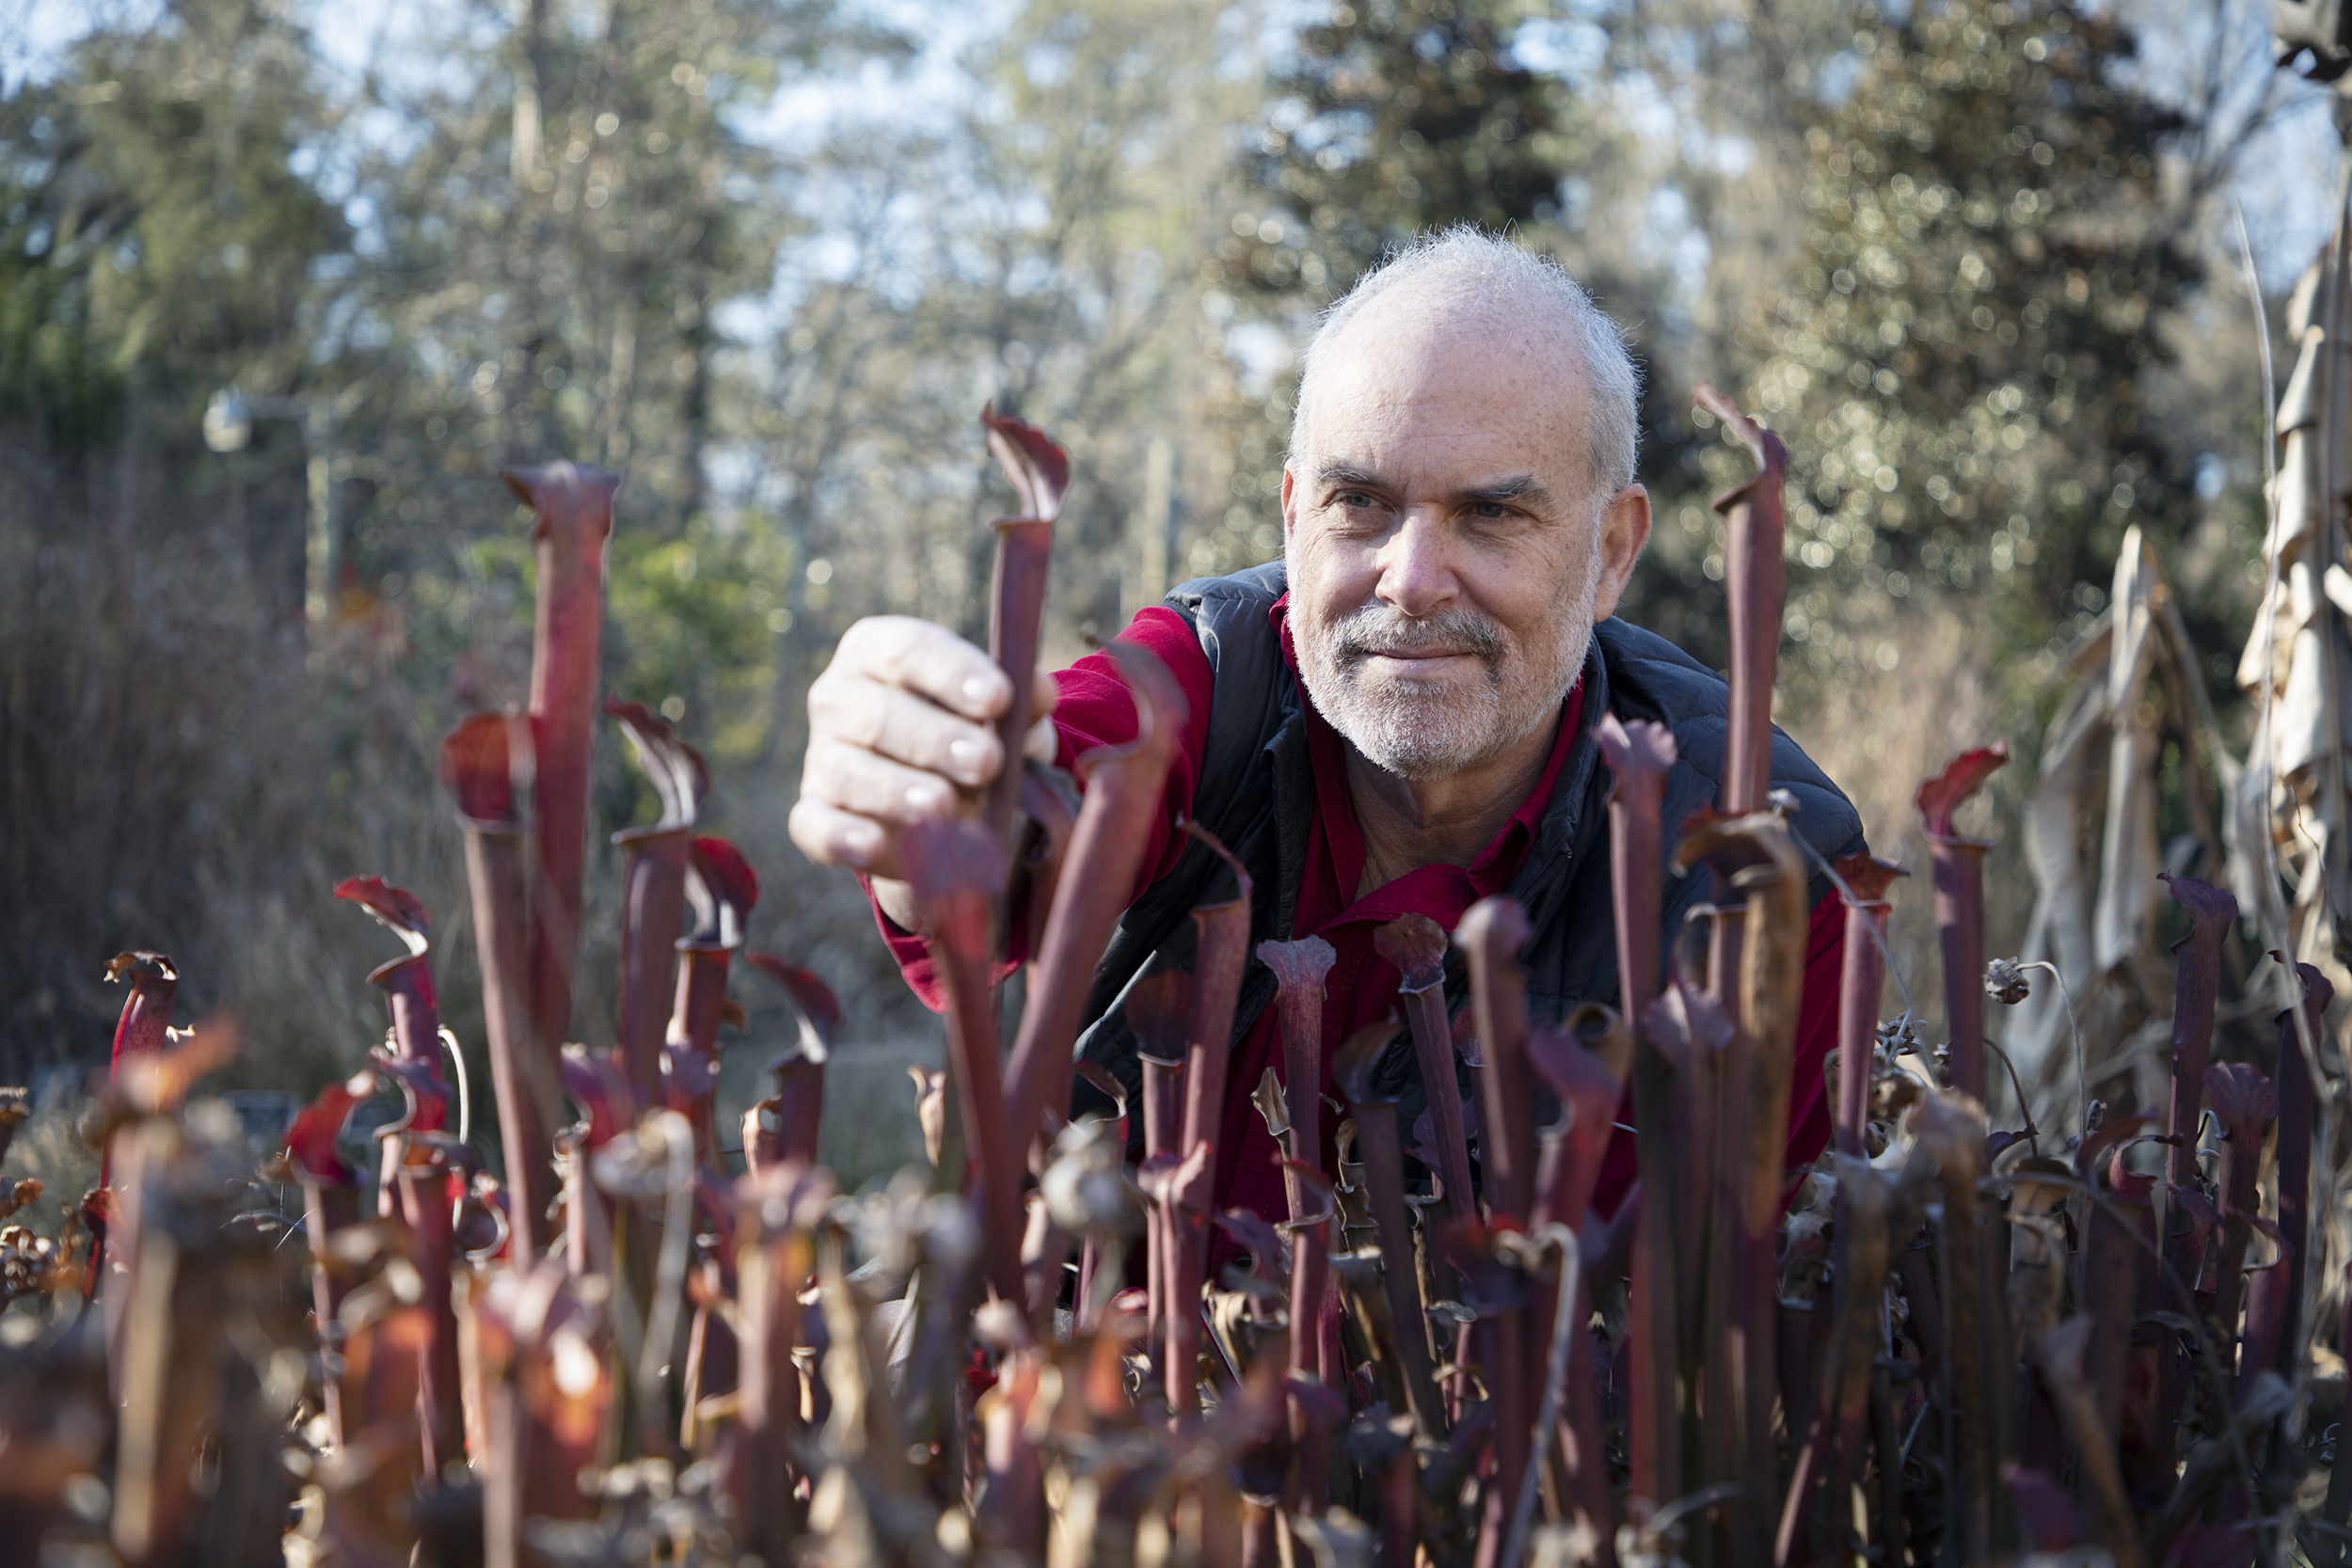 Alan Weakley reaches for a pitcher plant